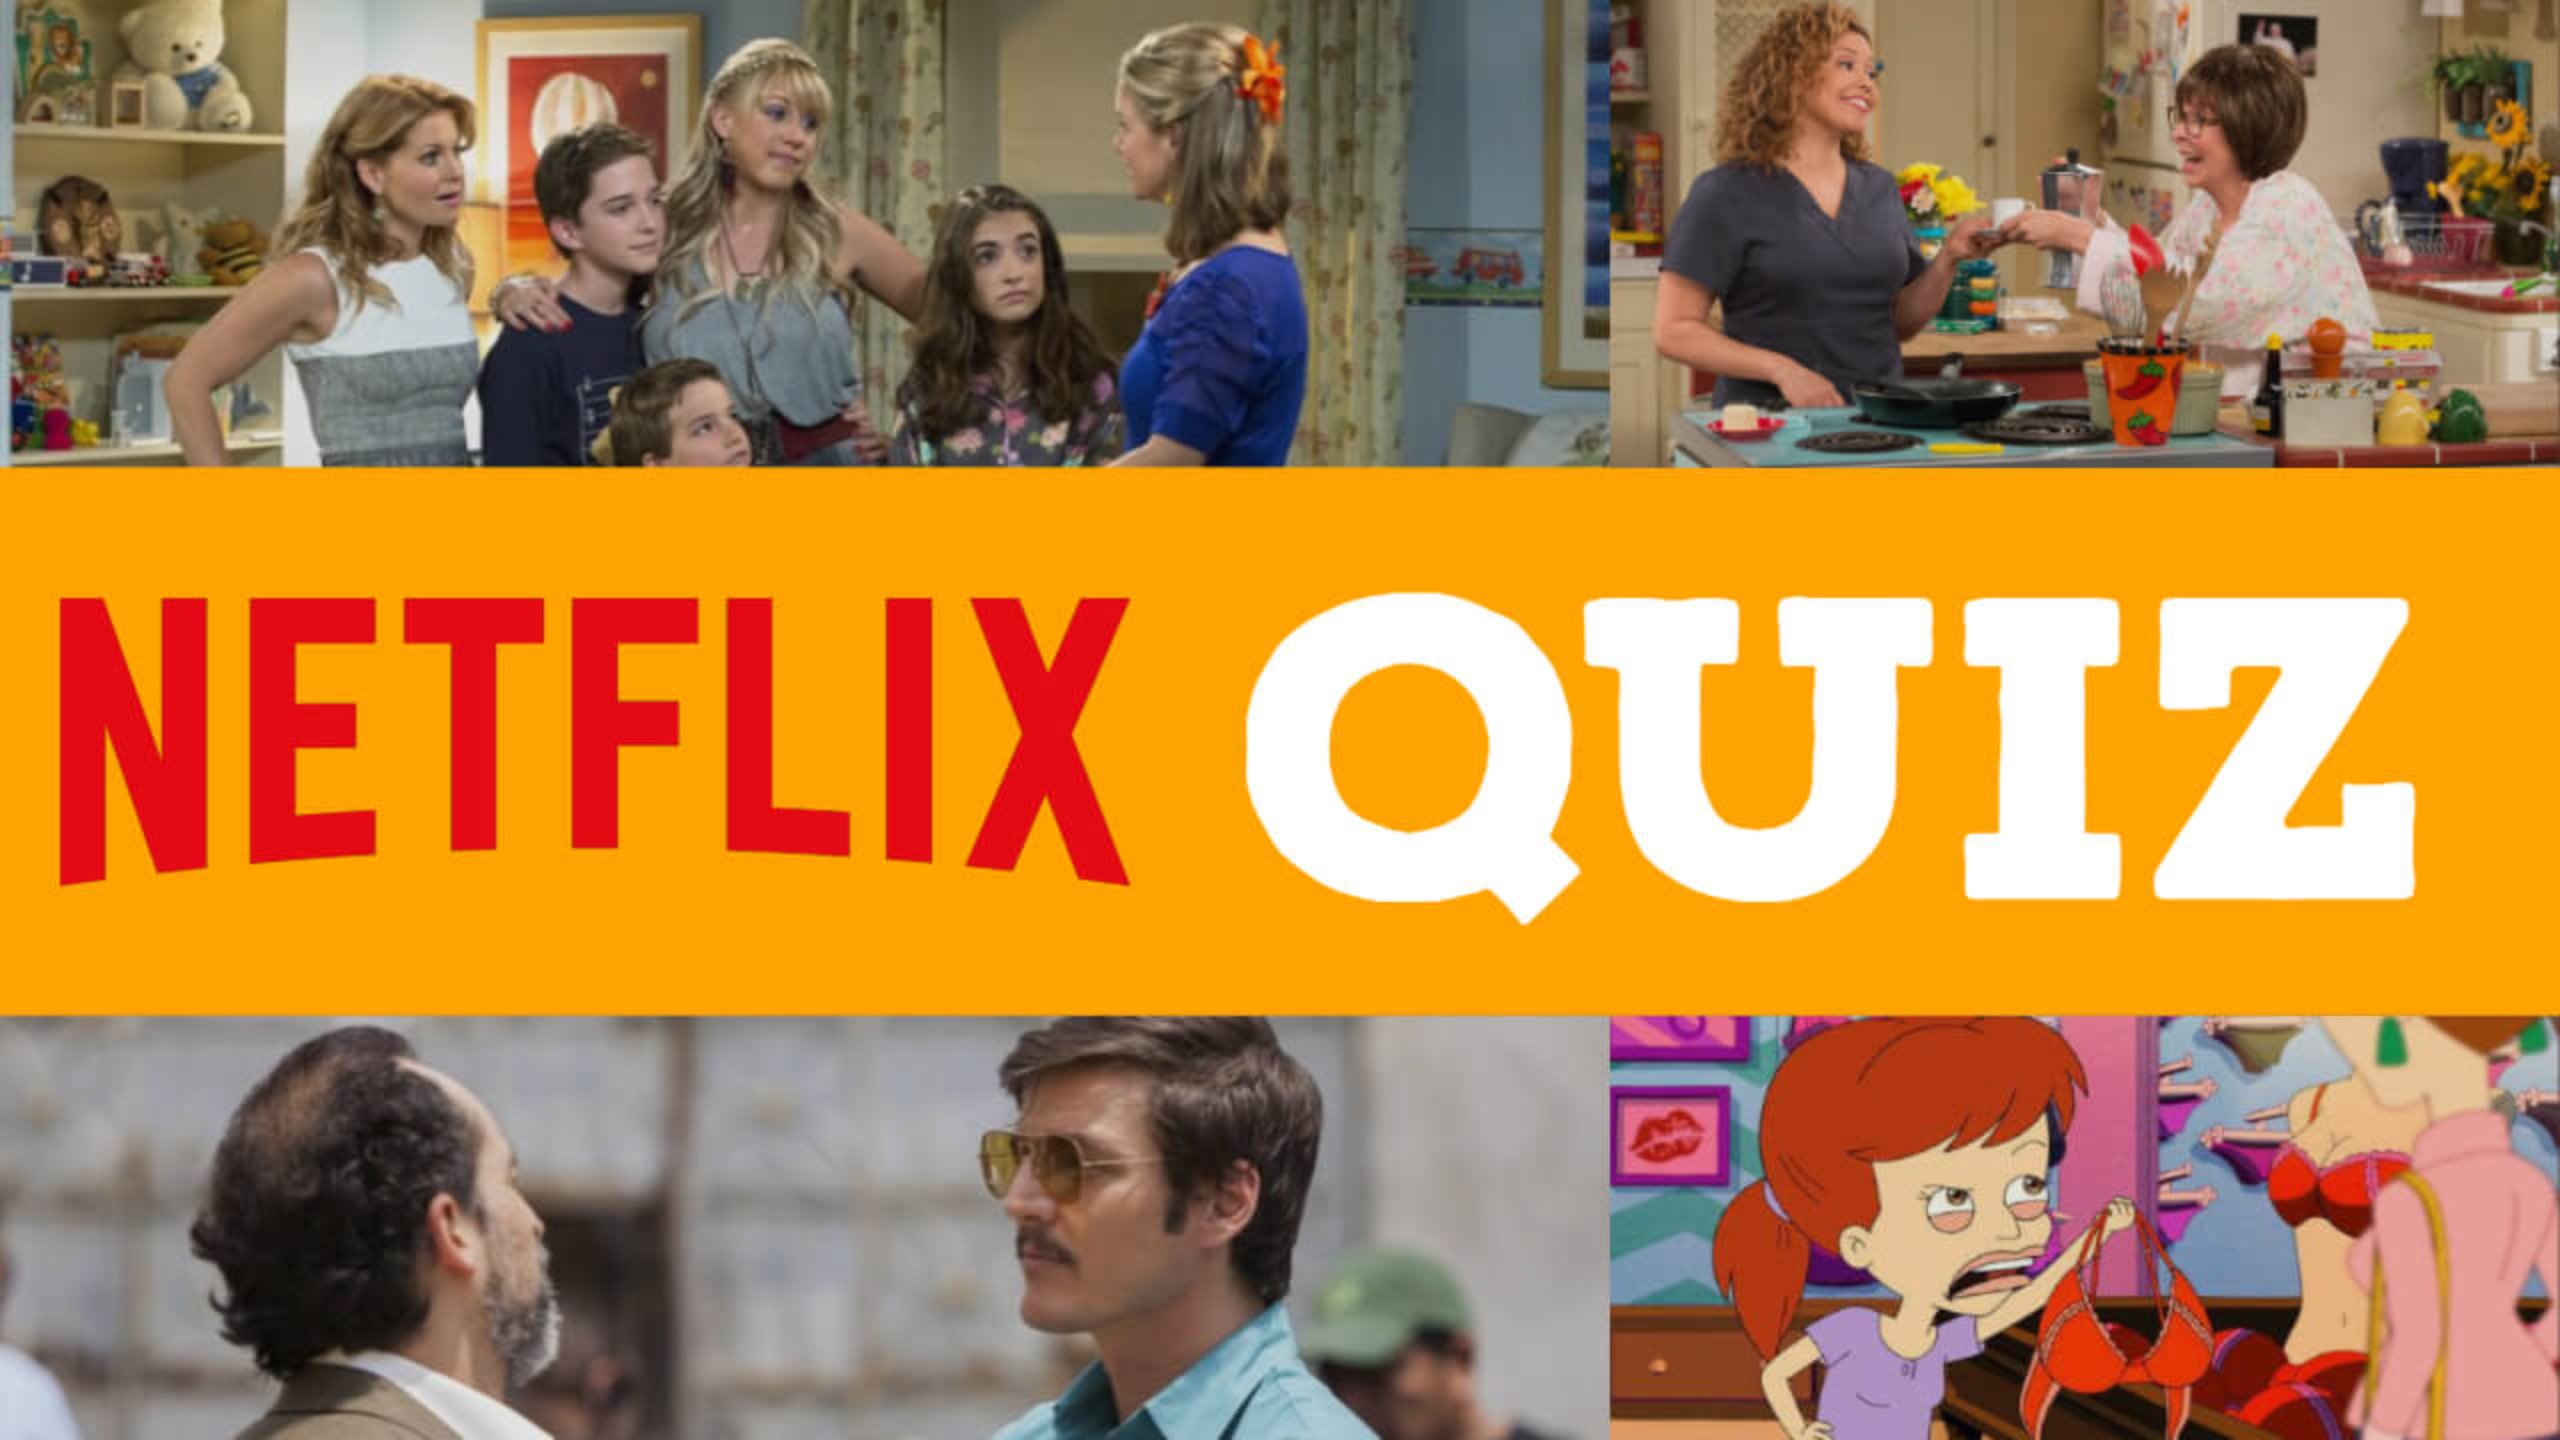 Netflix Quiz - Quick Questions